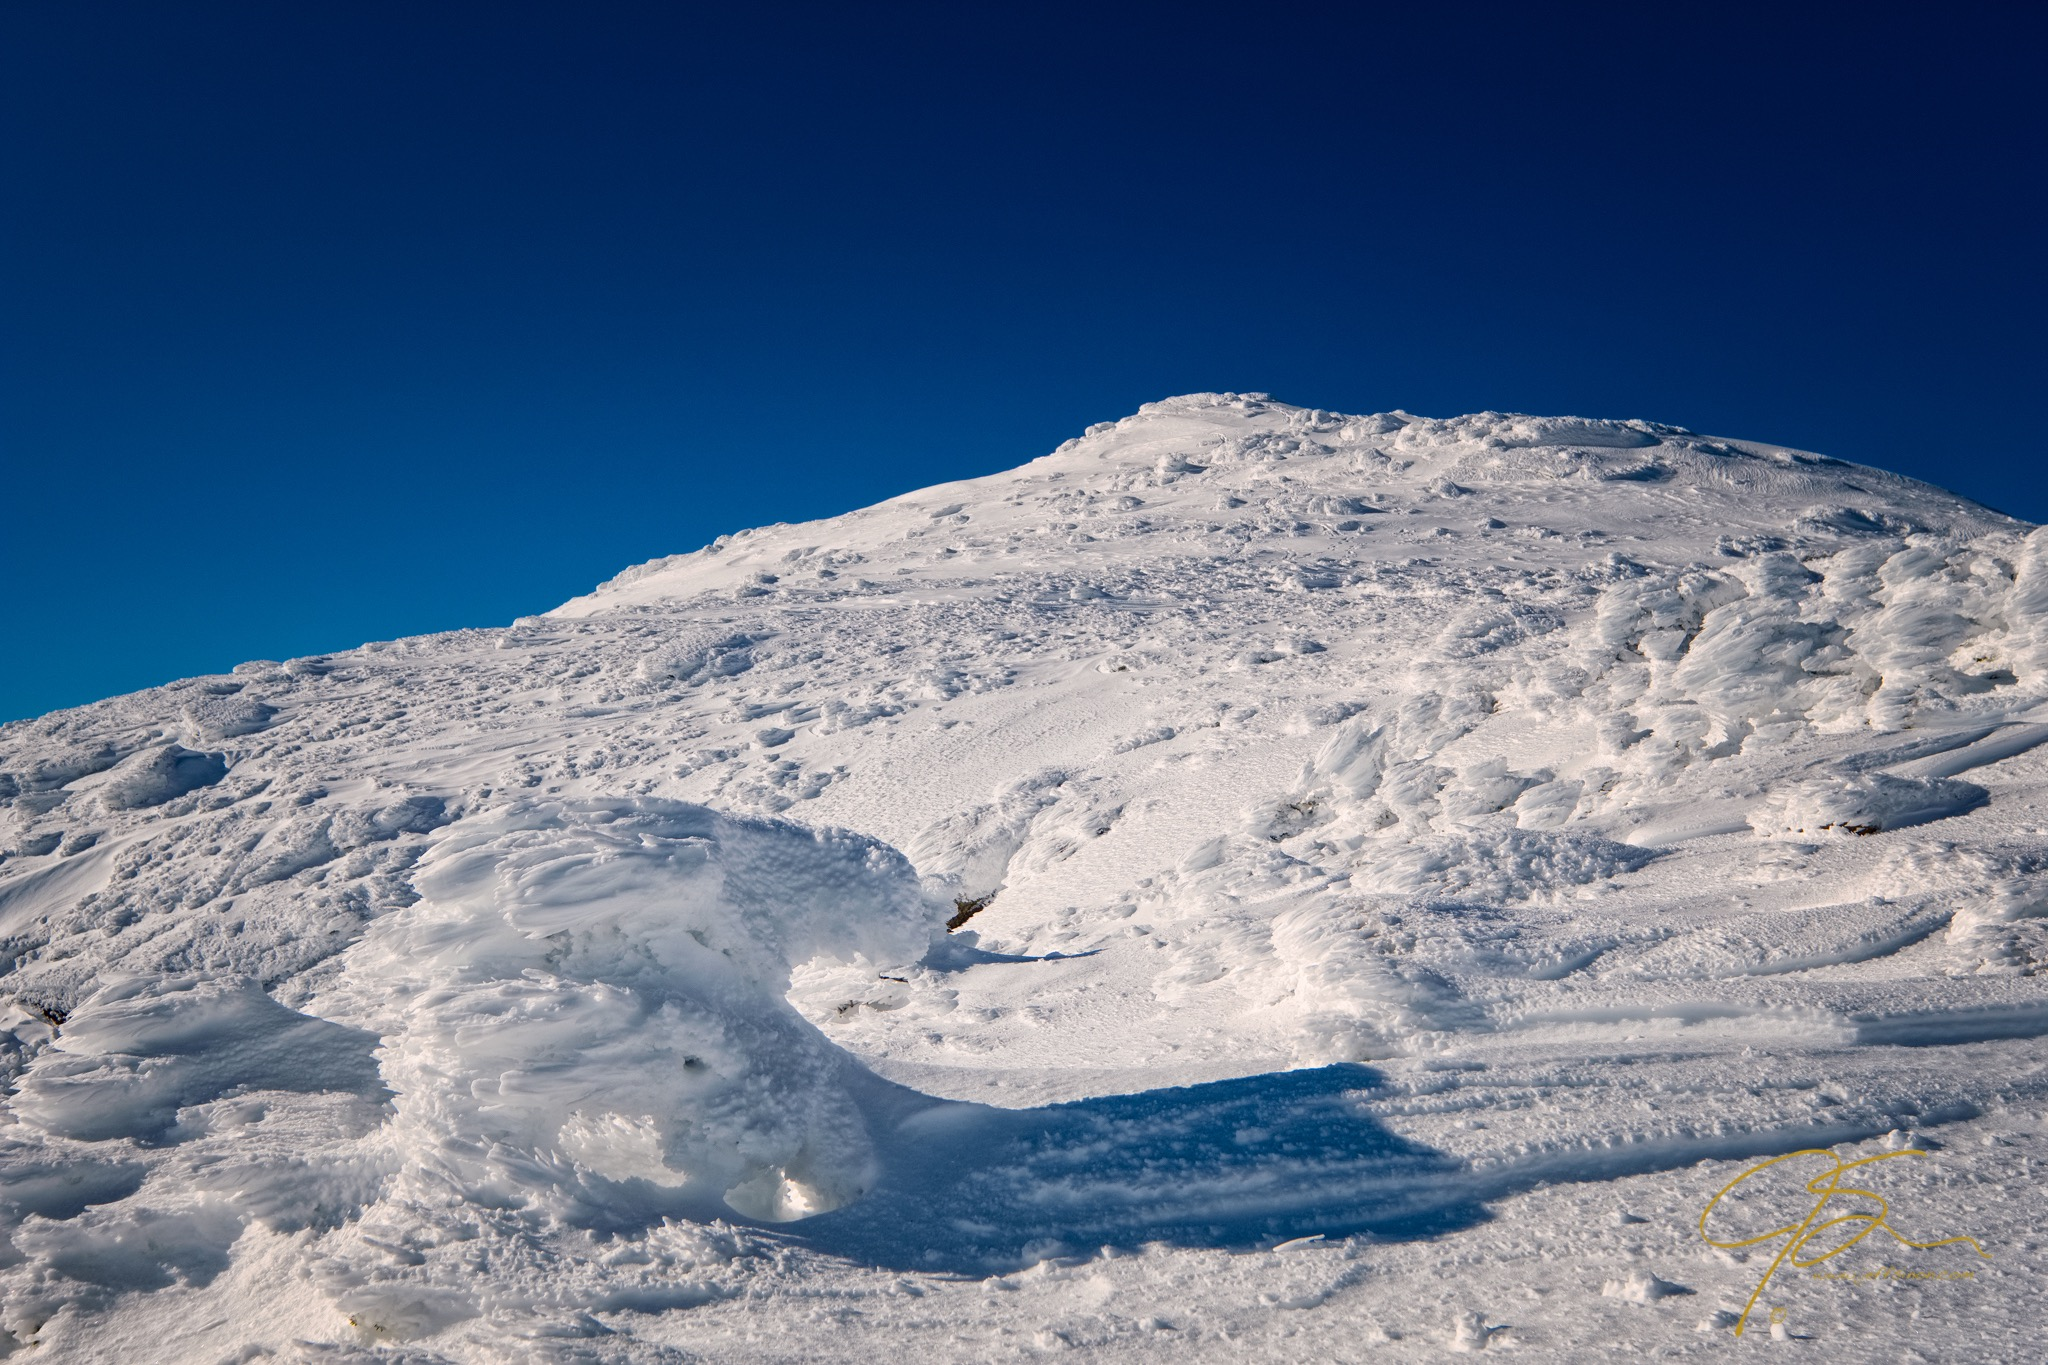 covered in snow and rime ice, New Hampshire's Mount Lafayette is a brilliant white under a clear blue winter sky.